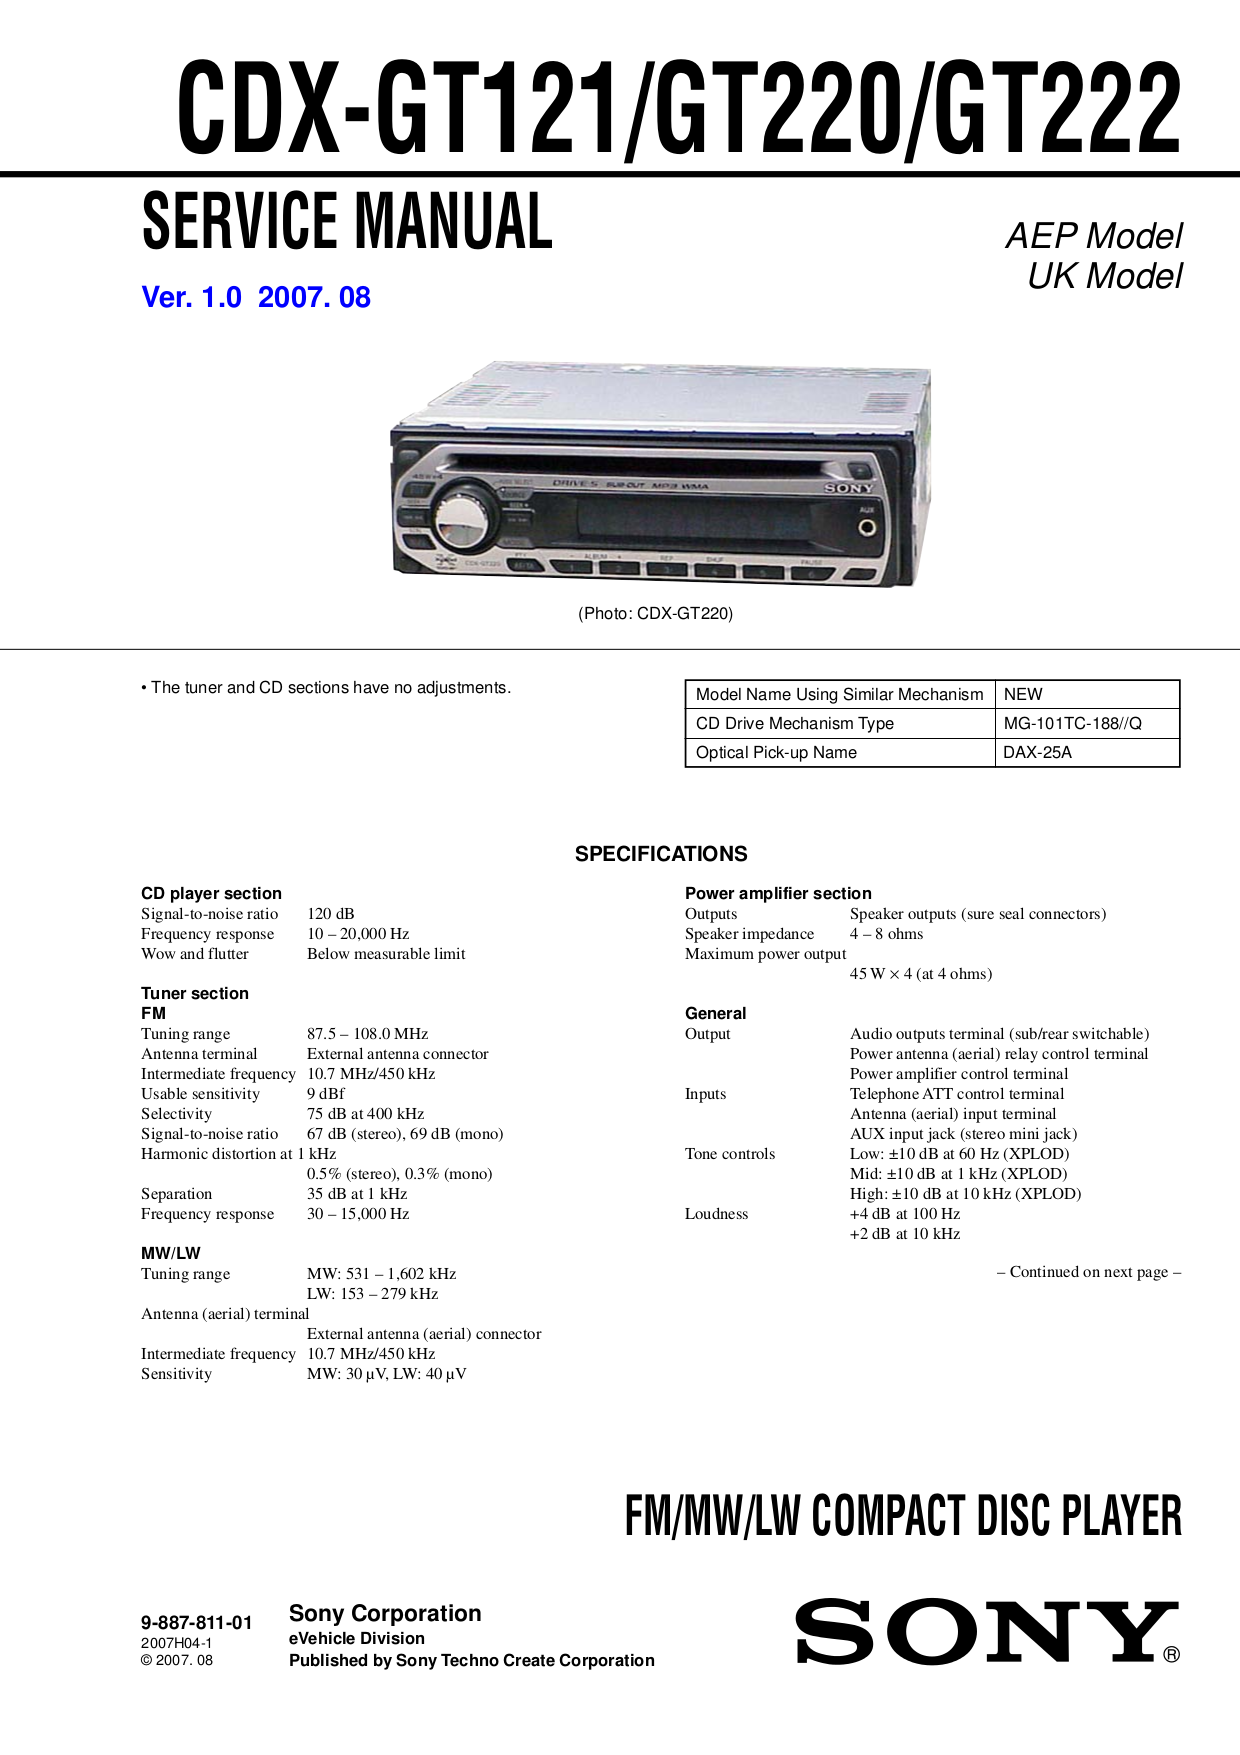 SONY CDX GT121 GT220 GT222.pdf 0 download free pdf for sony cdx gt220 car receiver manual sony xplod cdx sw200 wiring diagram at gsmportal.co